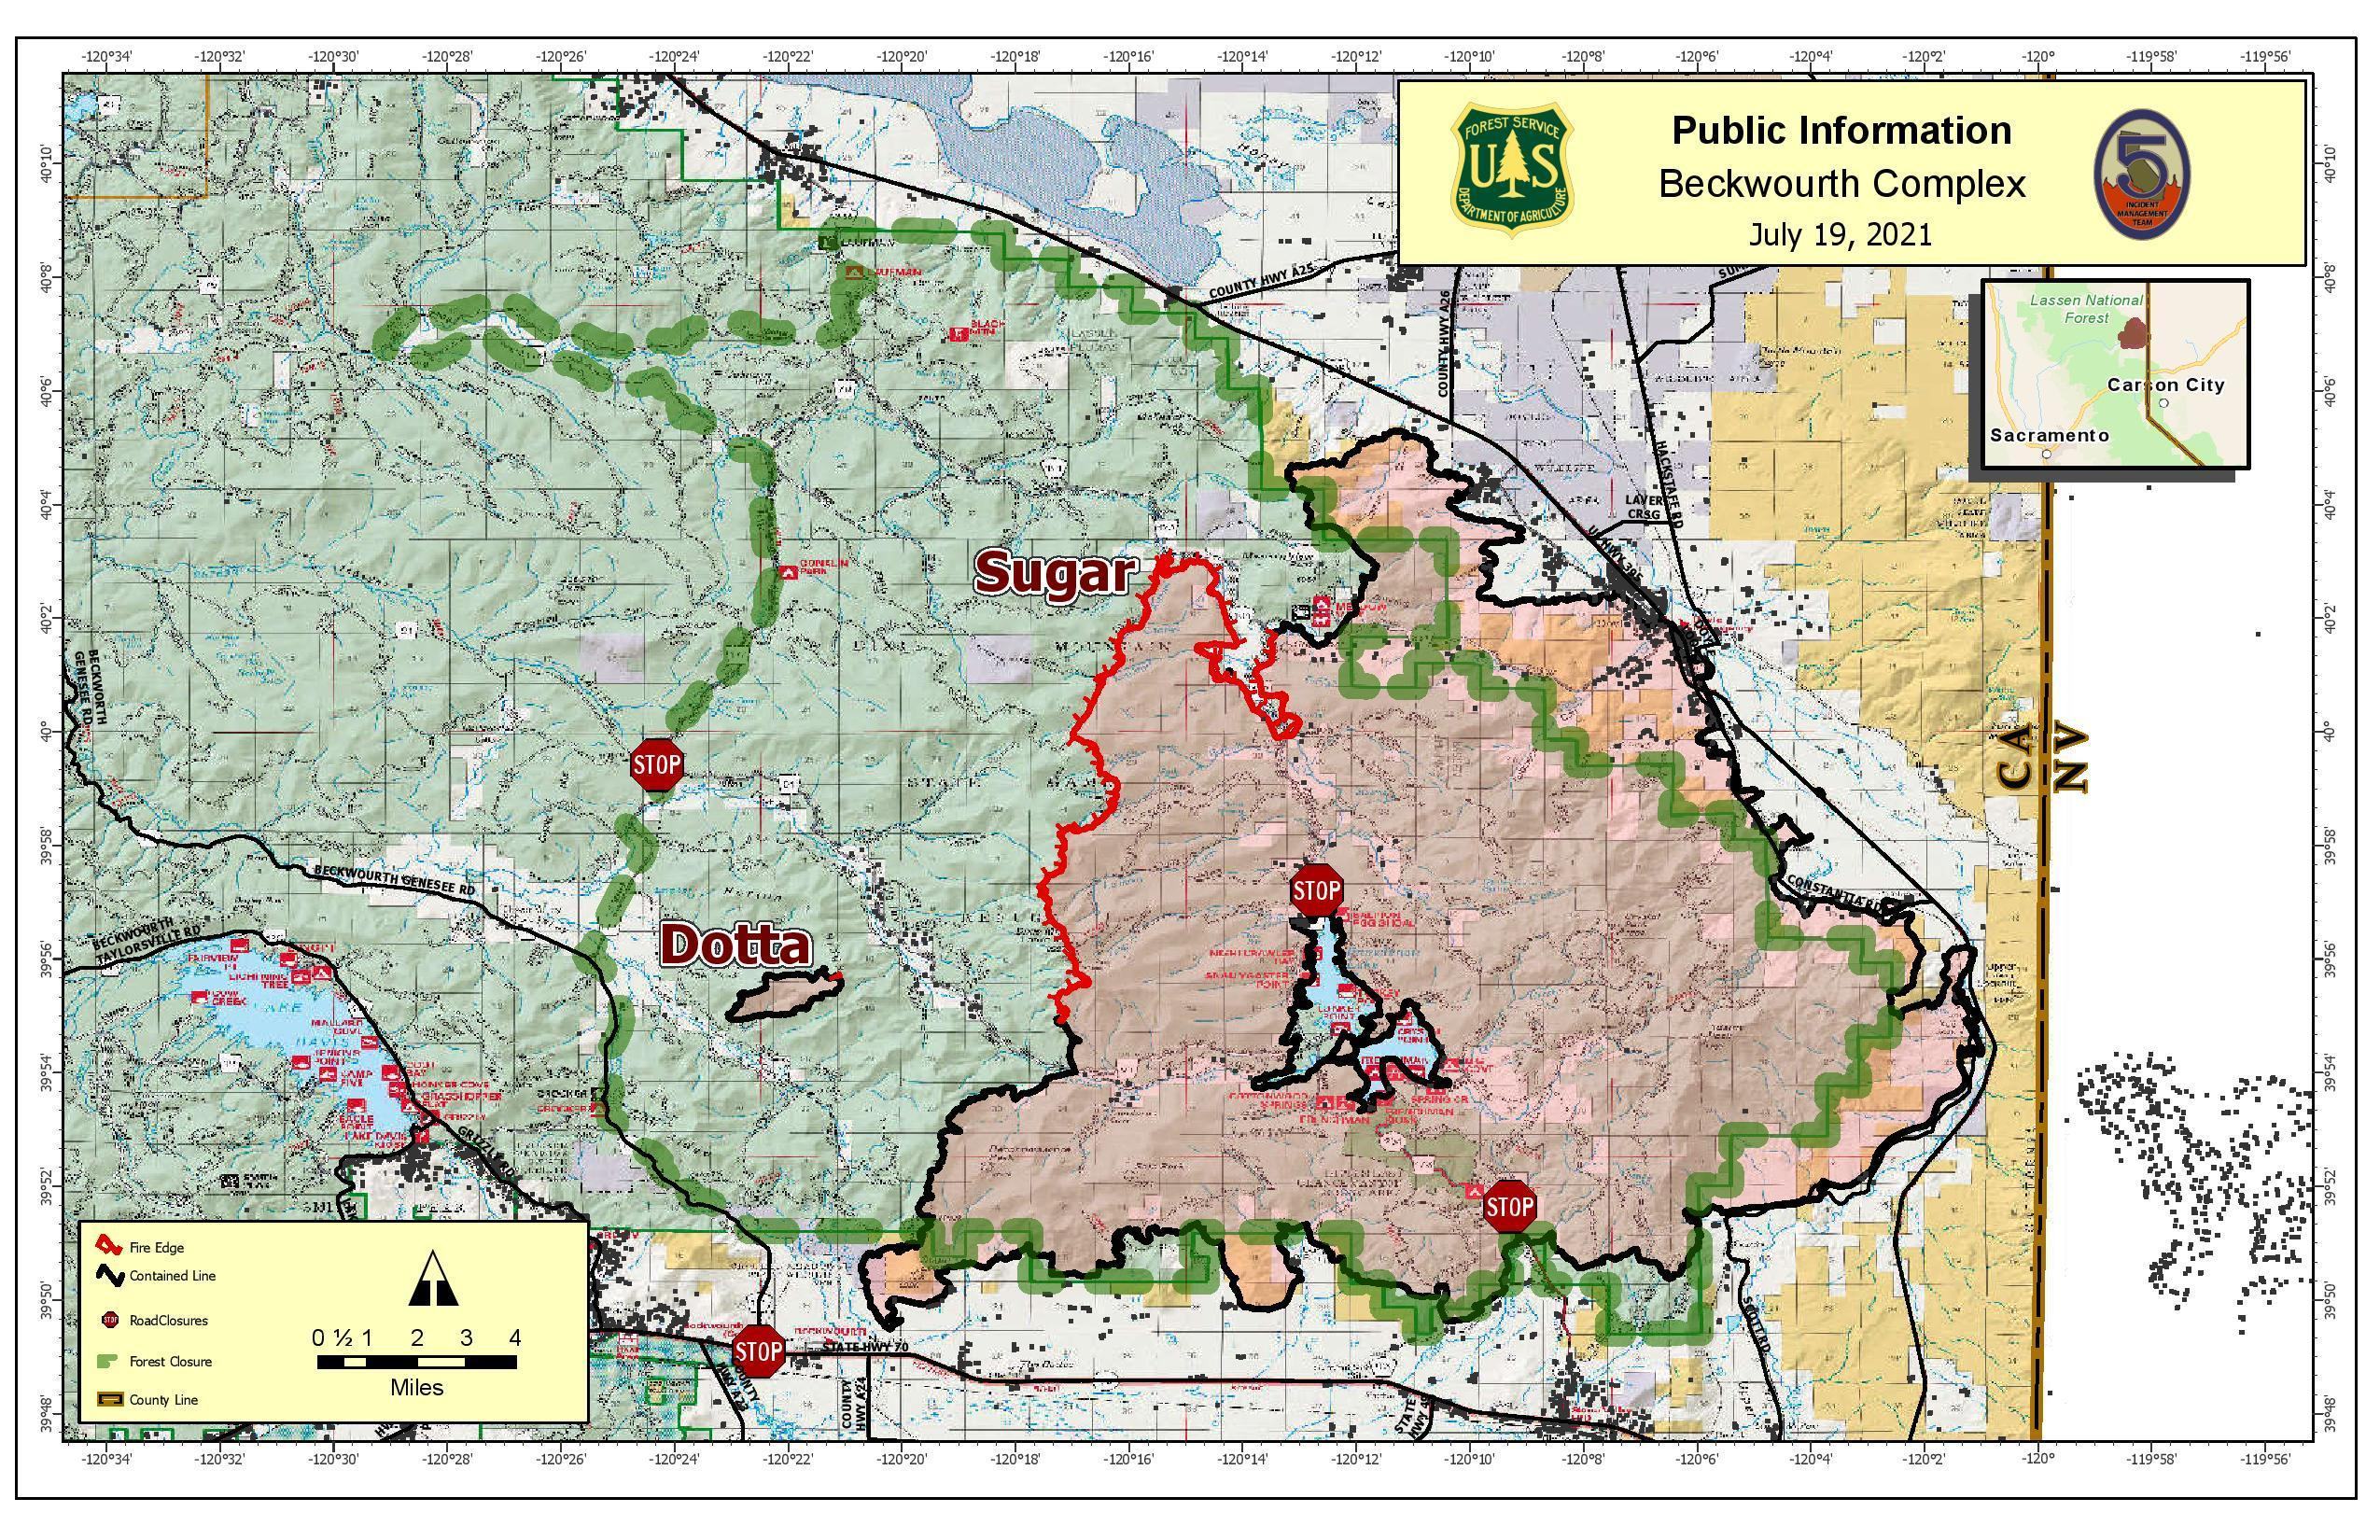 This map shows the fire perimeter map of the Beckwourth Complex on July 19, 2021